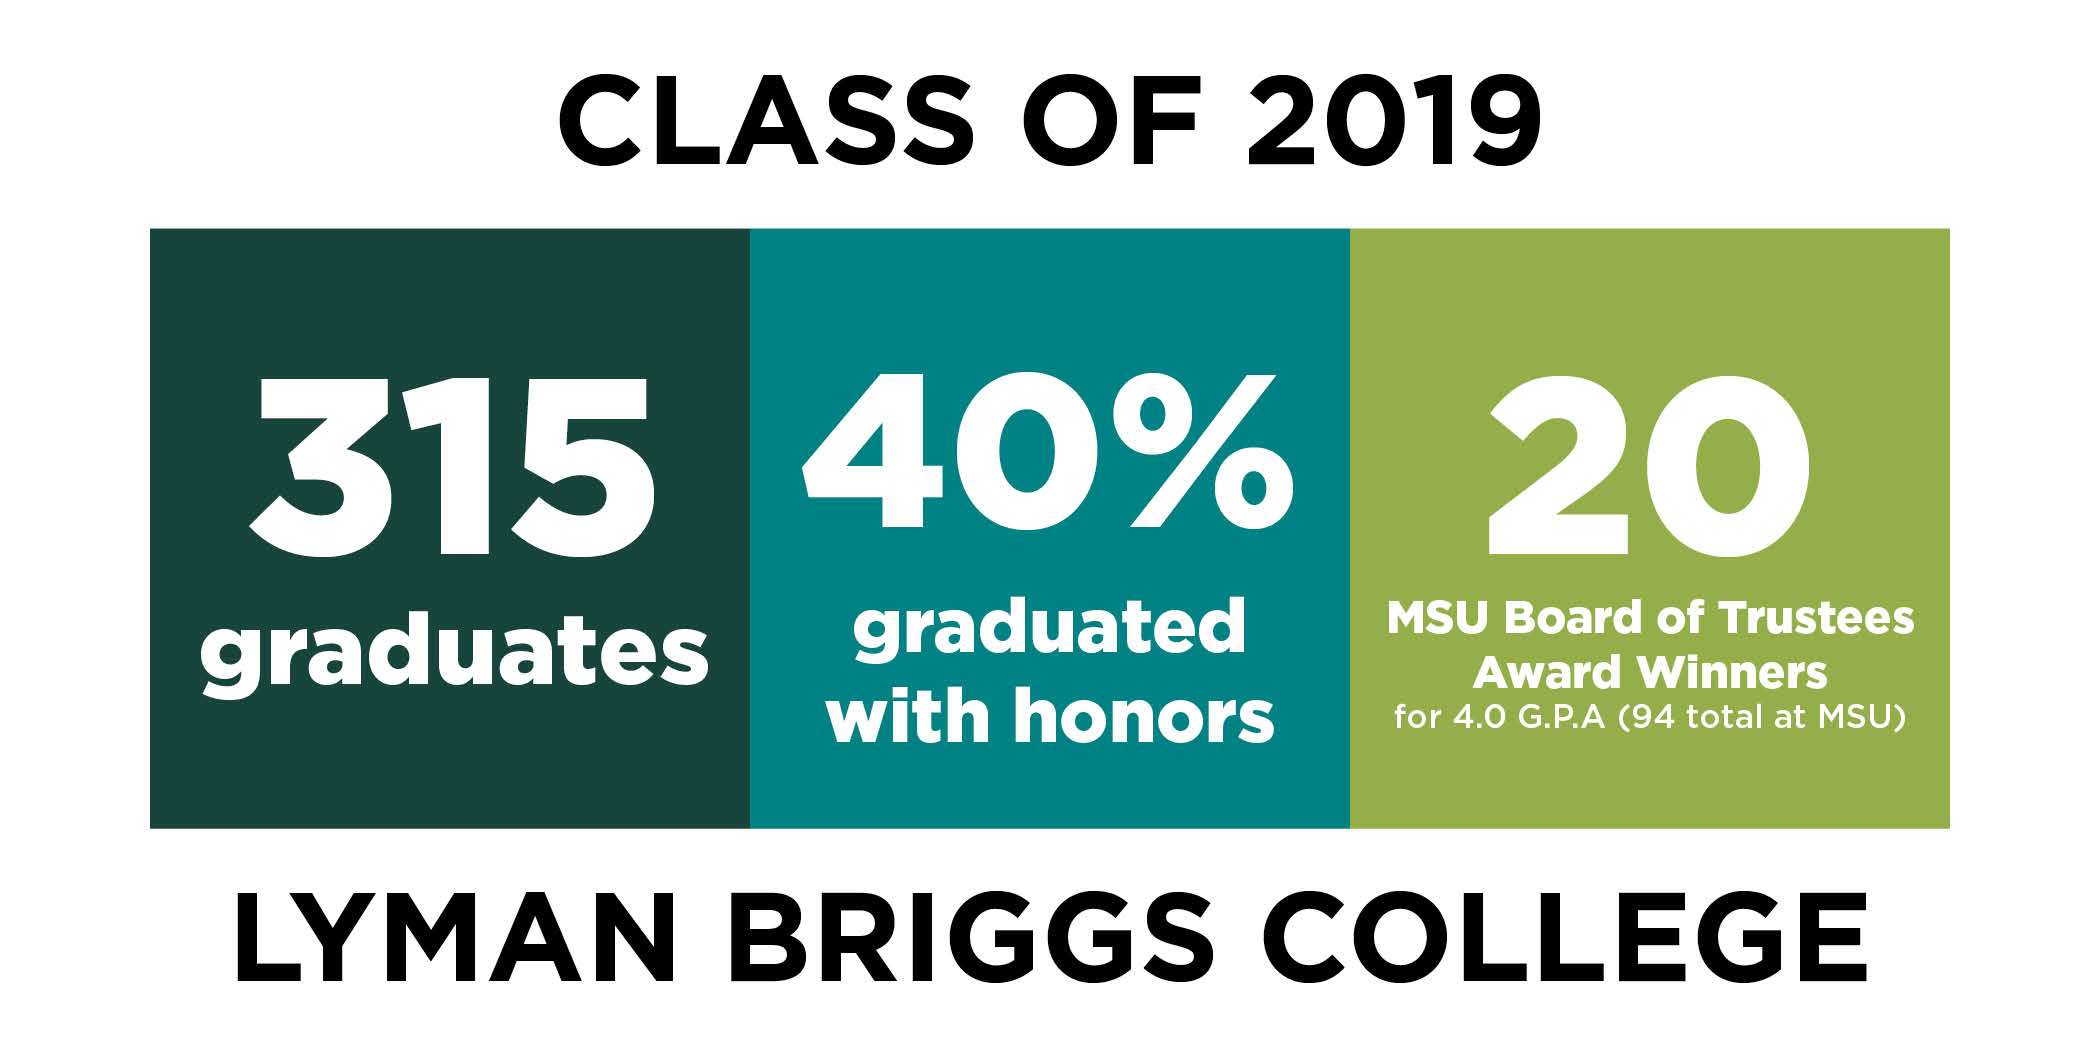 Spring 2019 Commencement at a Glance